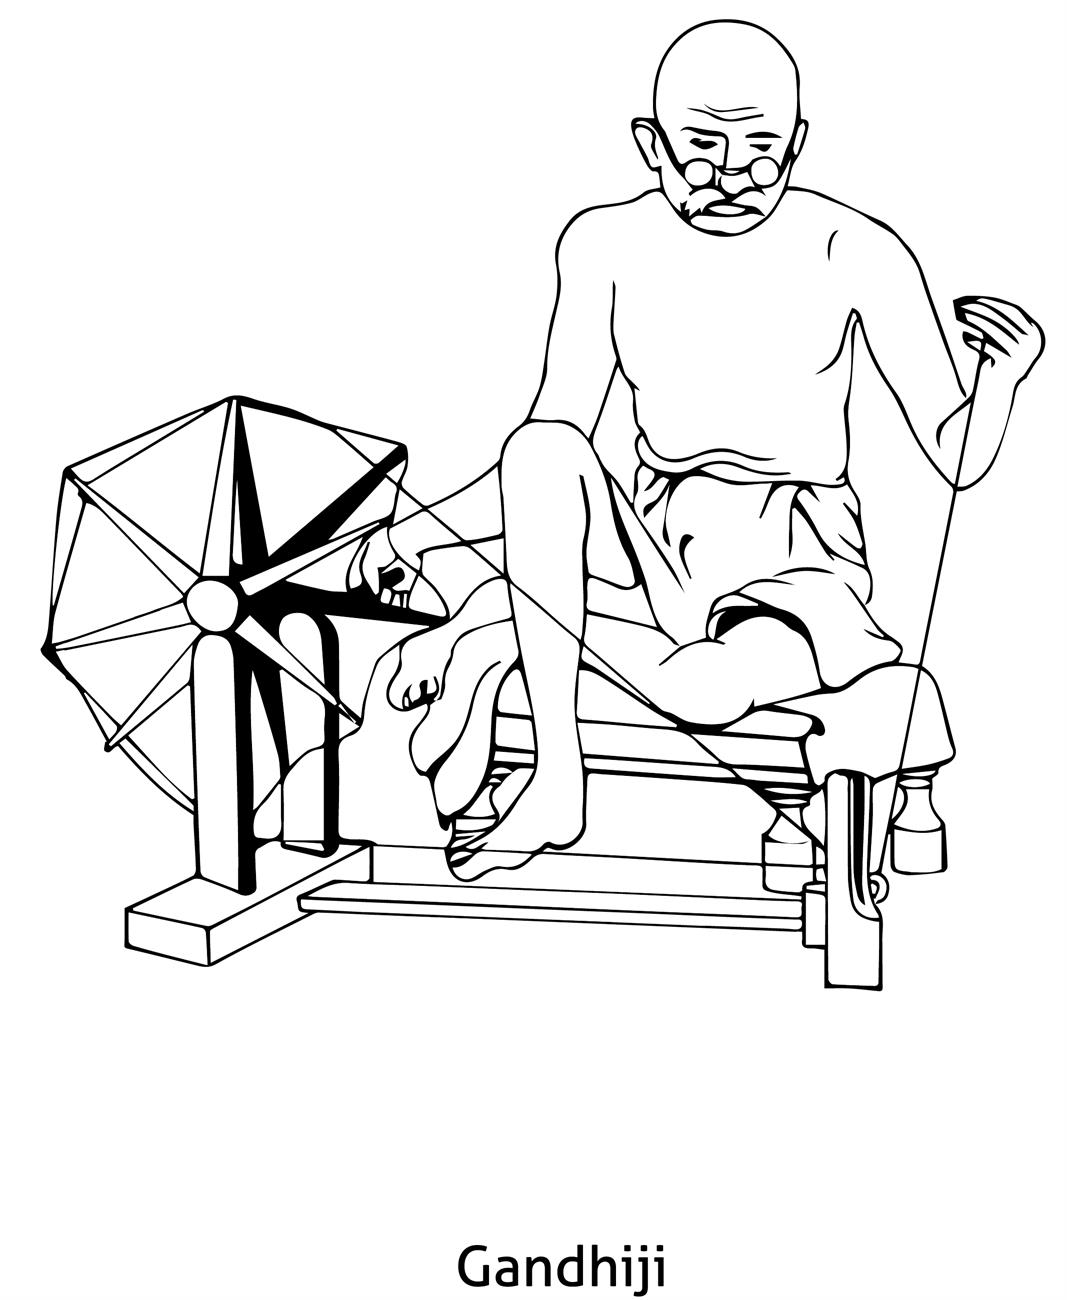 gandhiji standing coloring pages - photo#10